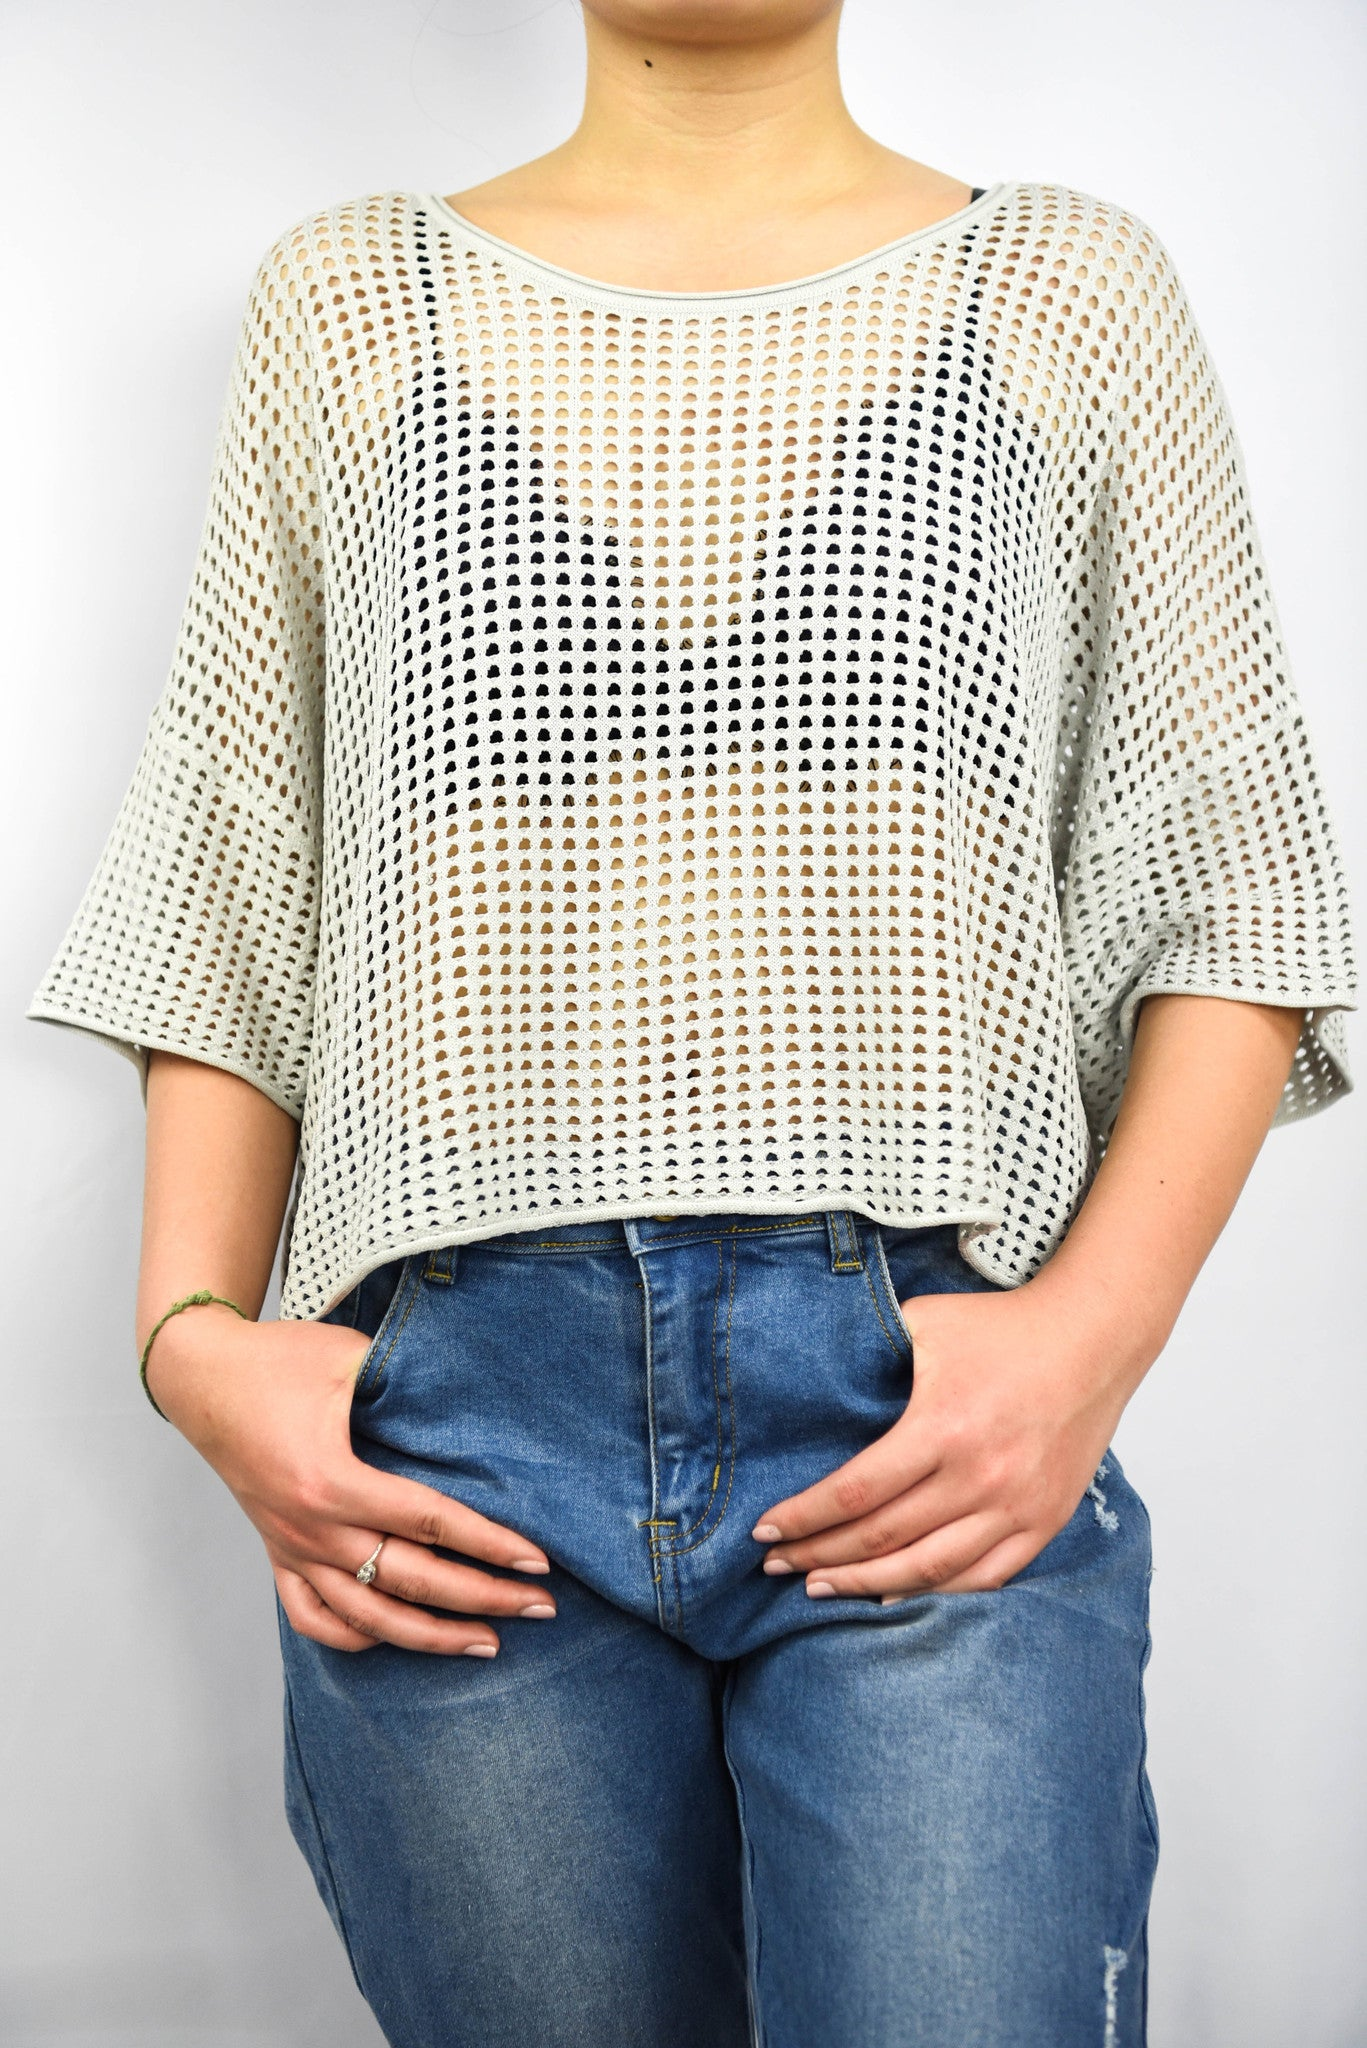 The Box O' Mesh Top